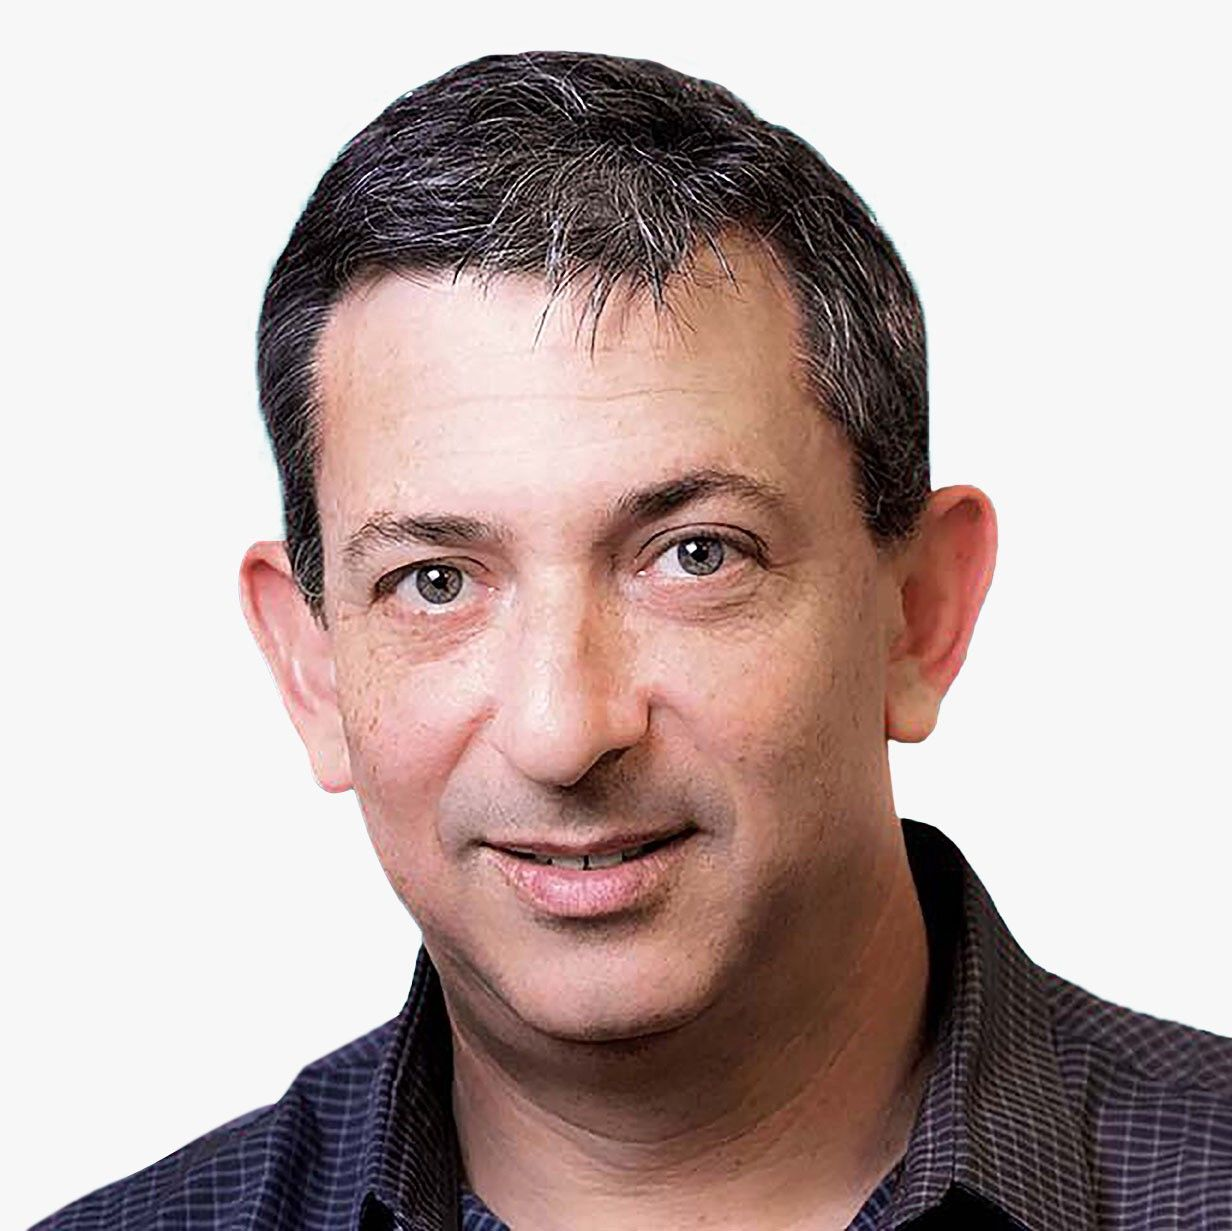 Roy Goldman — Head of Product Management Skydio Drone